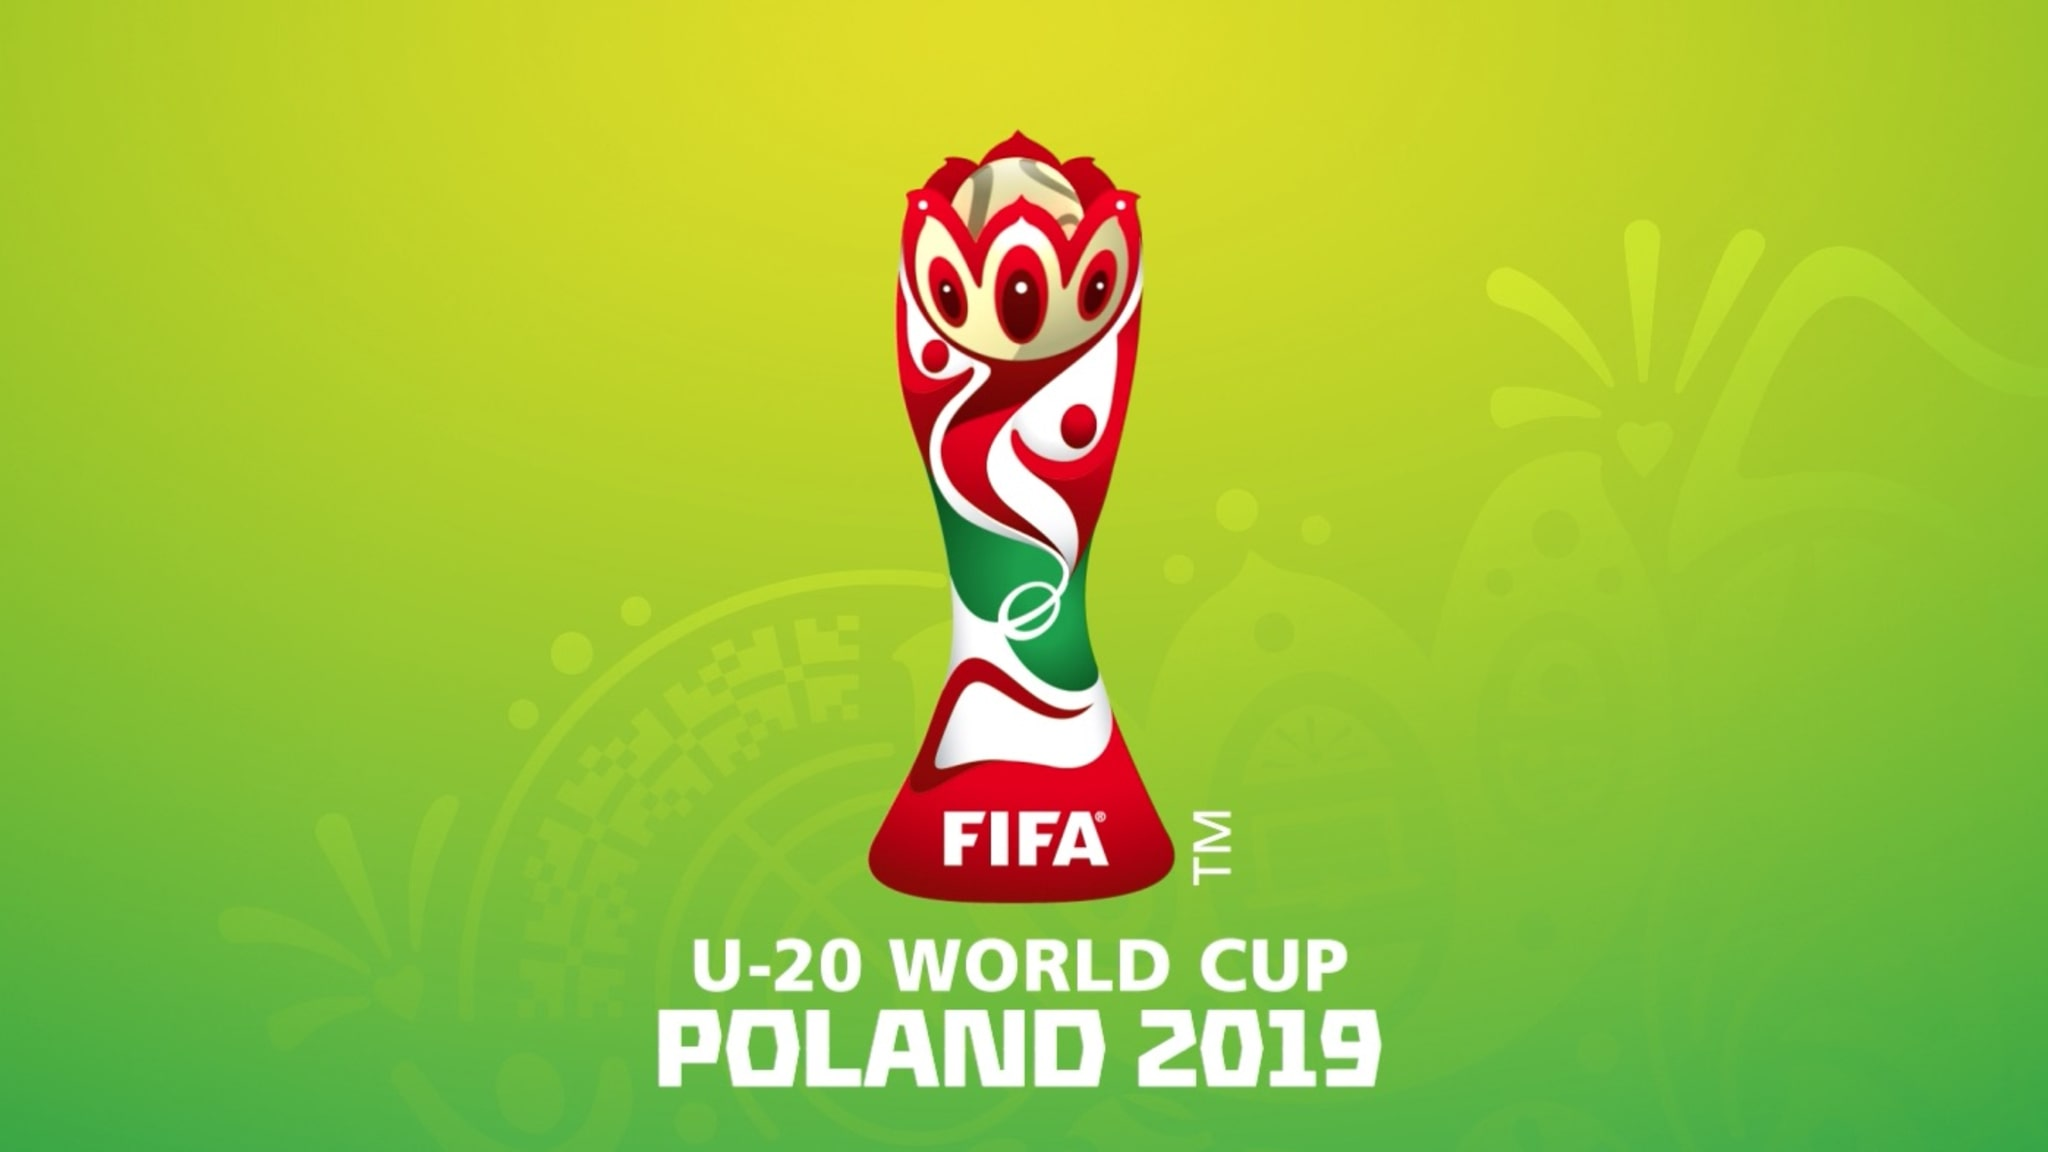 FIFA U 20 World Cup Poland 2019   News   Emblem and match schedule 2048x1152